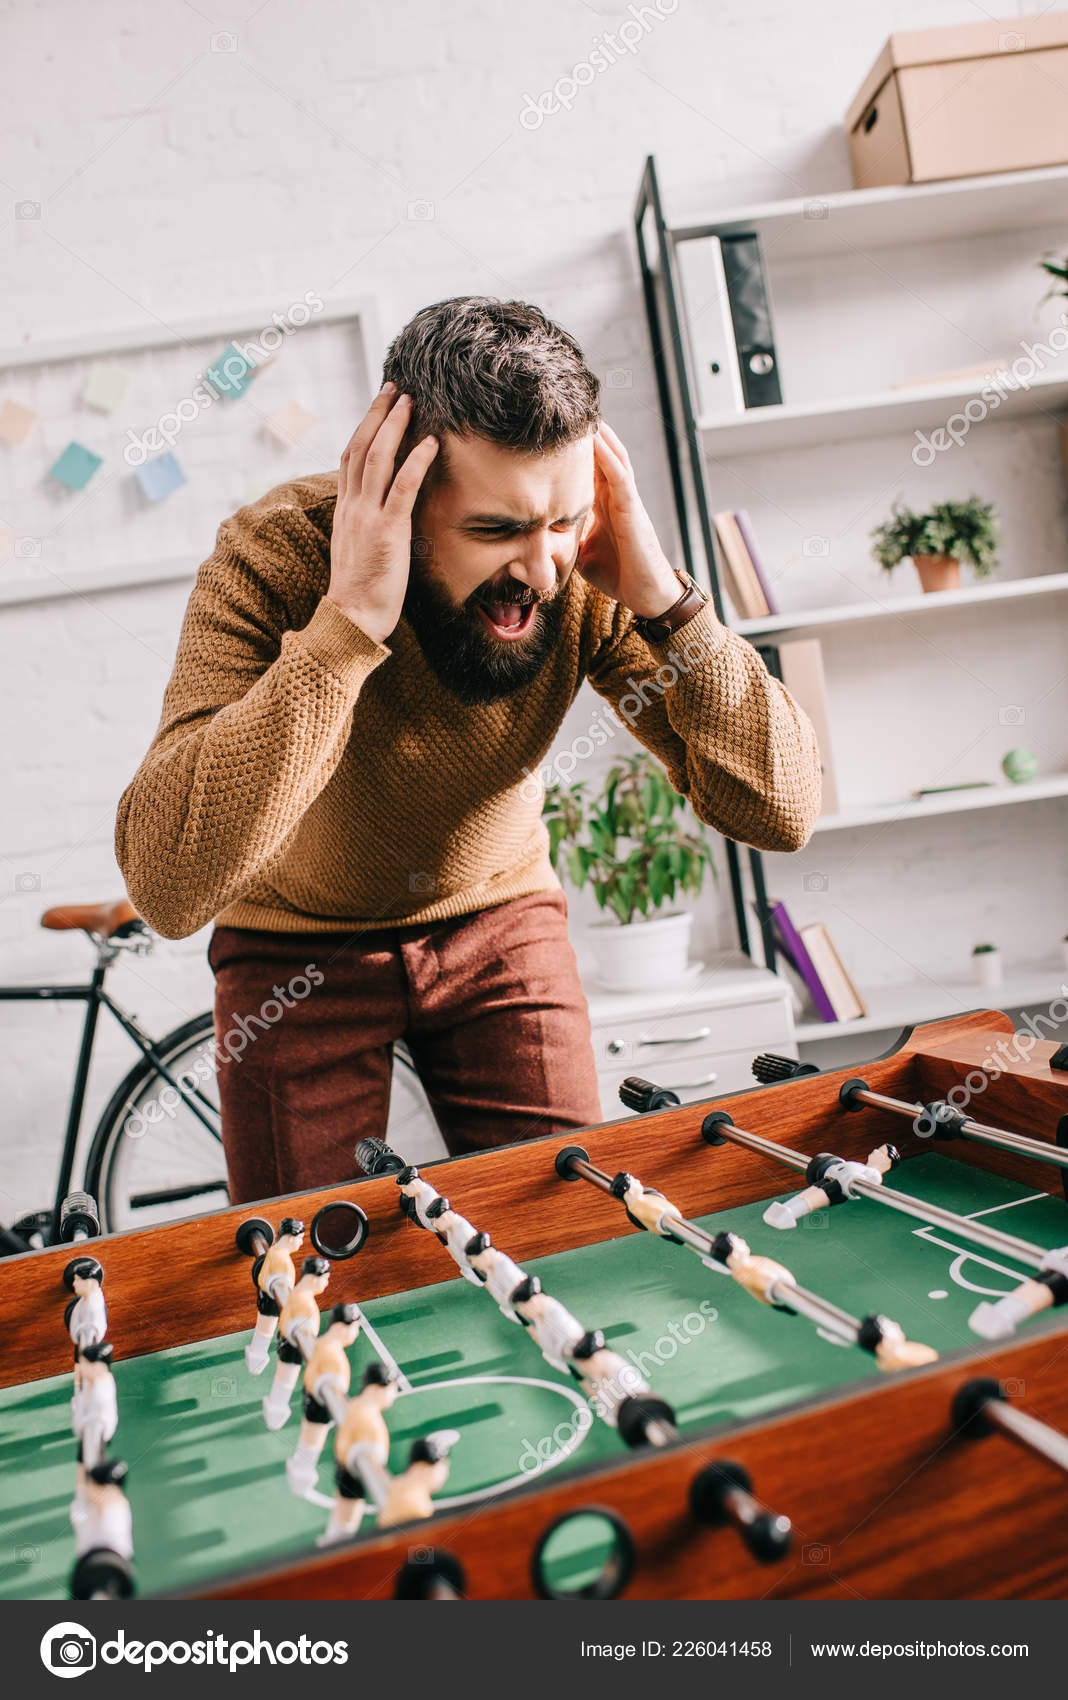 Angry Adult Man Hands Head Yelling Playing Table Football Game